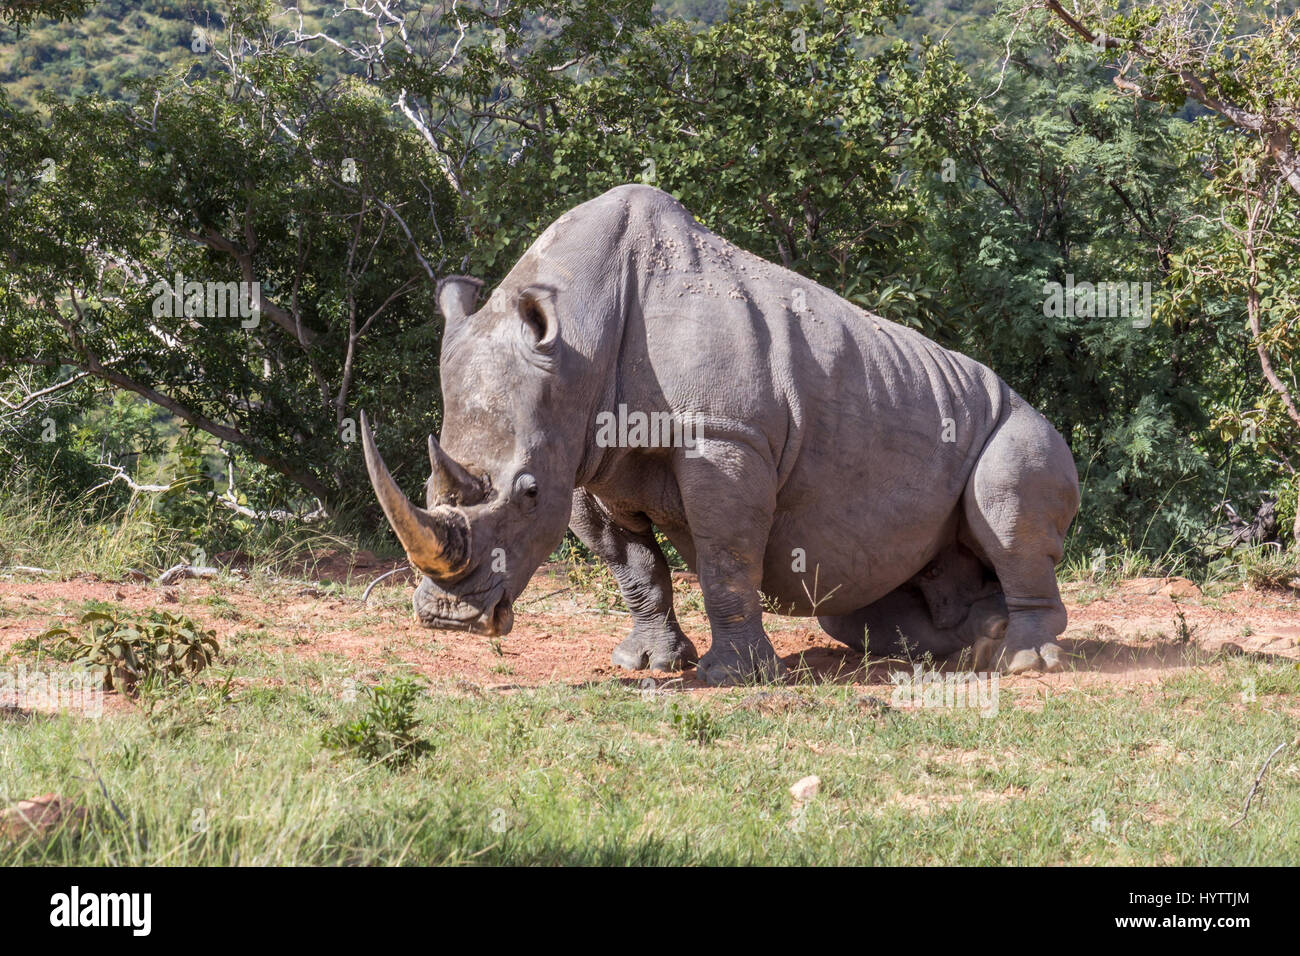 An adult white rhino bull resting in the Marakele national park, south africa - Stock Image